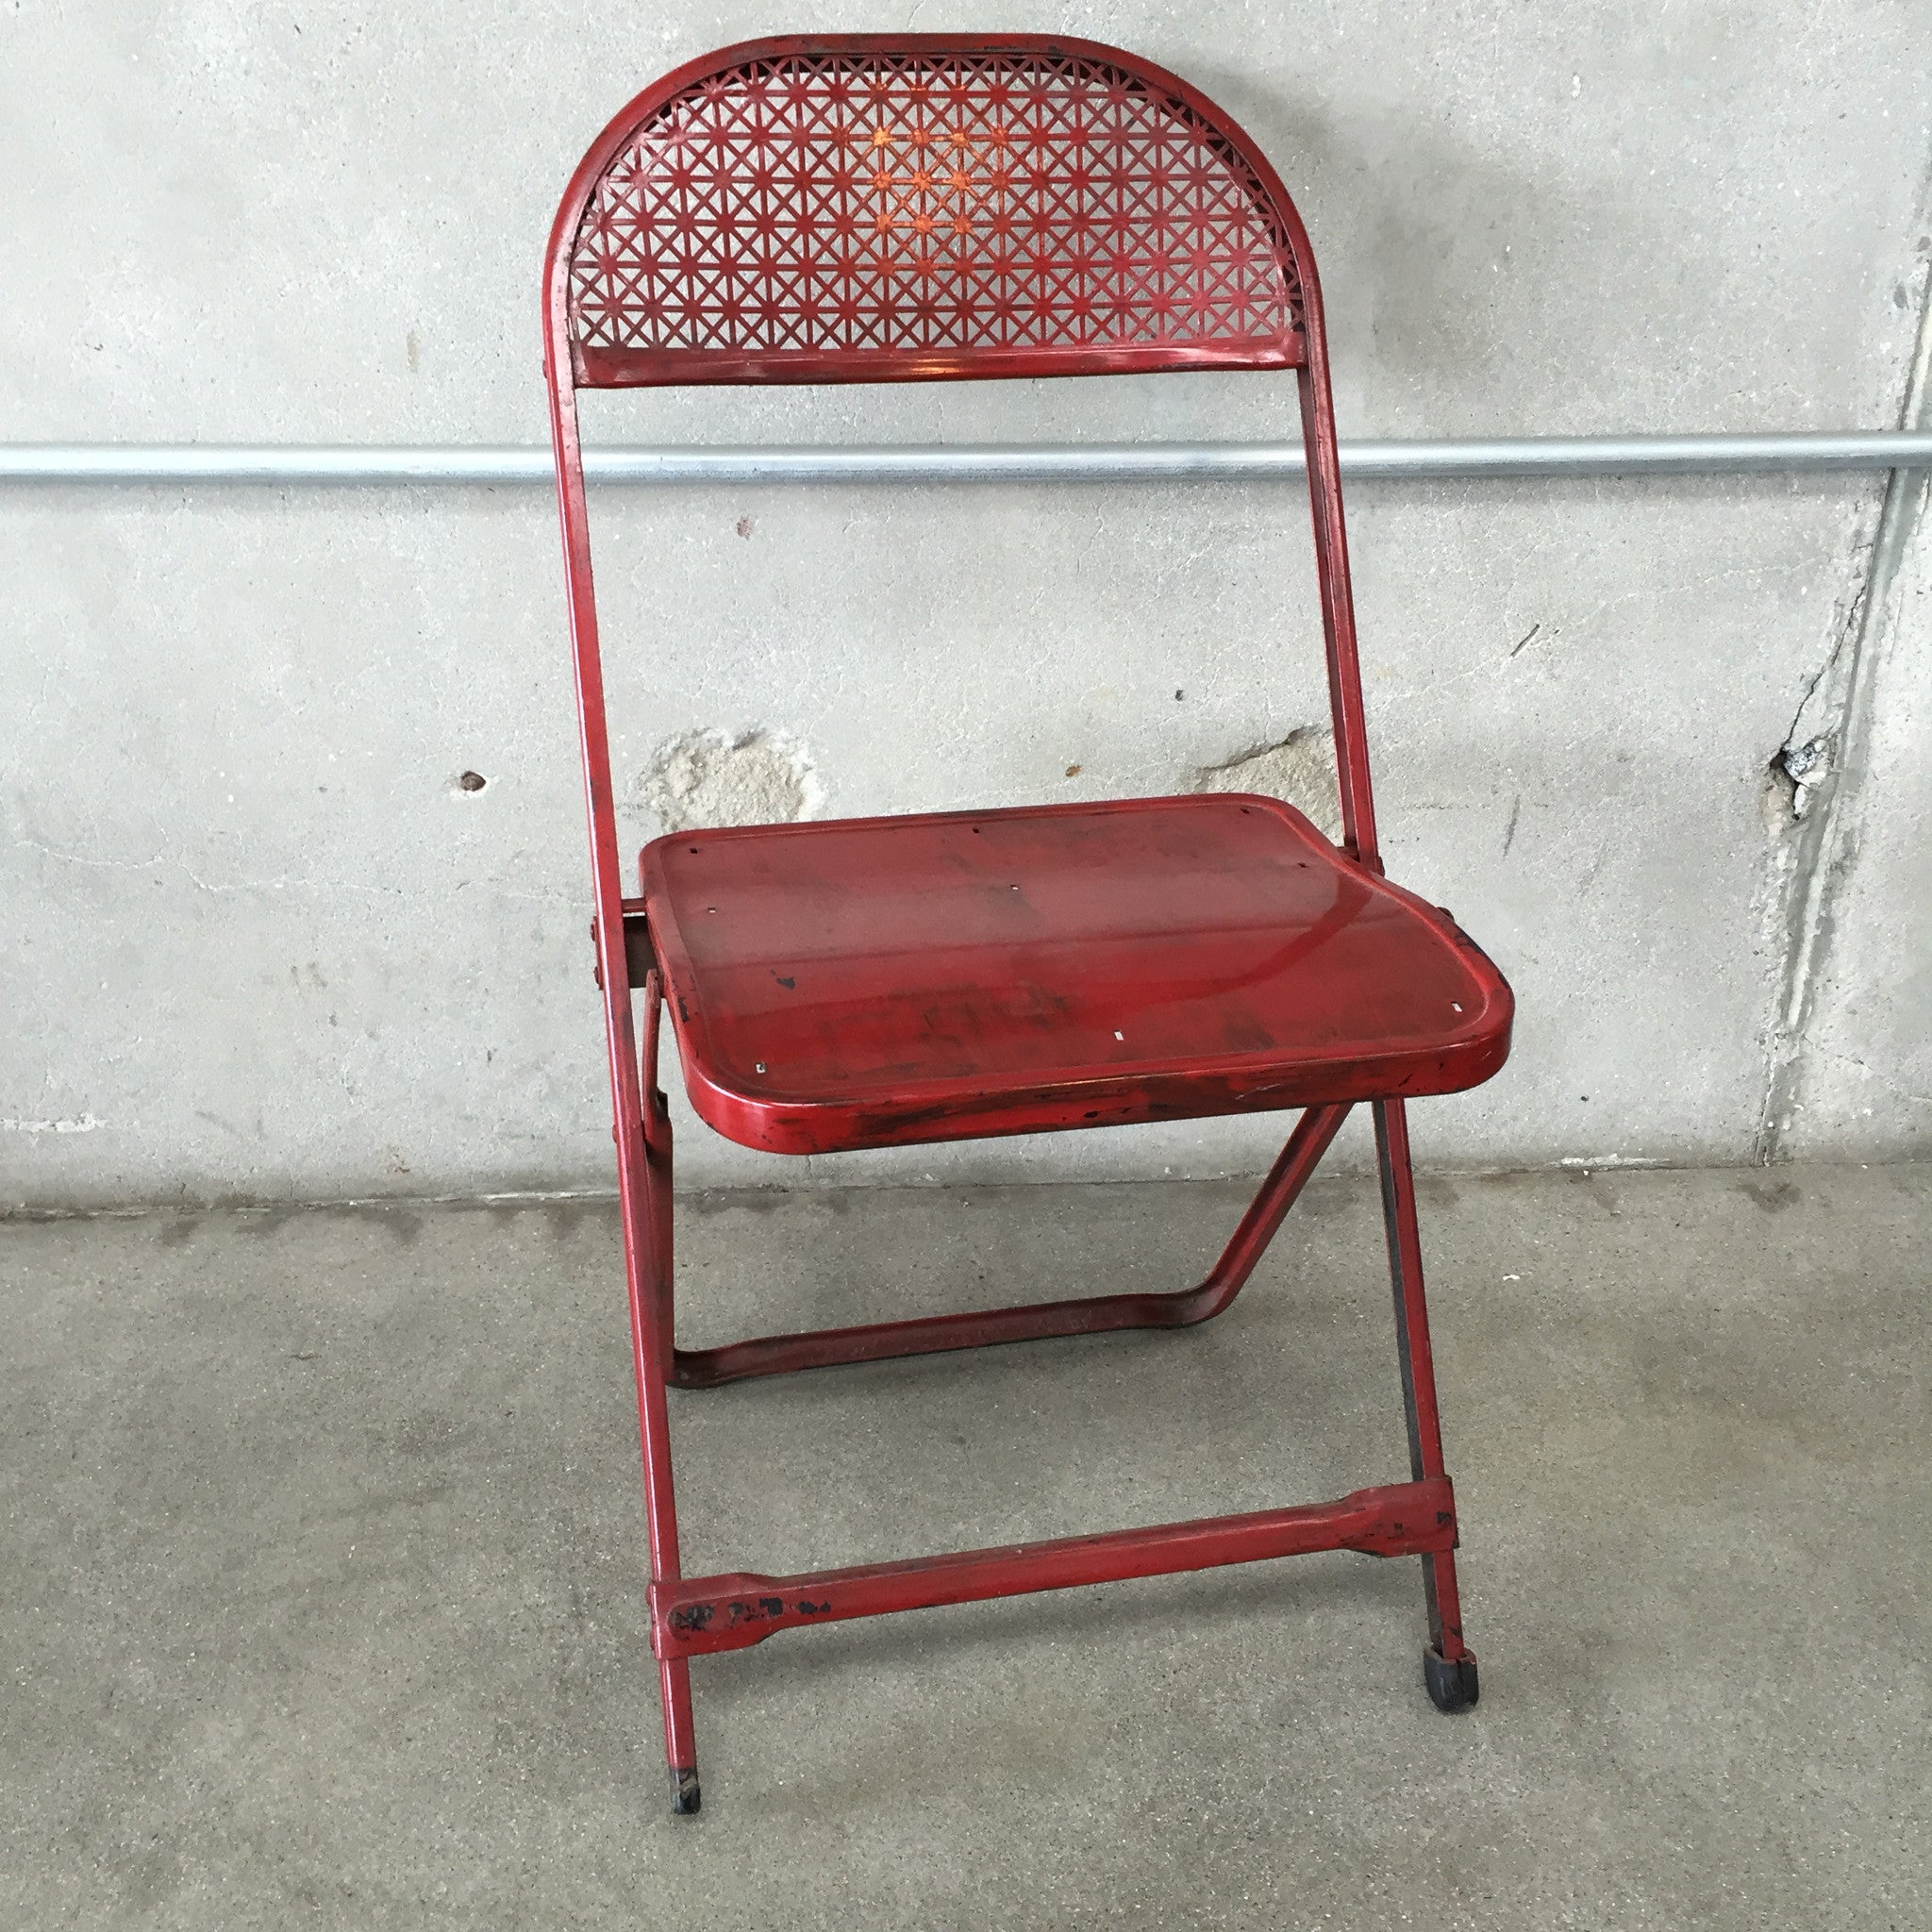 Vintage Red Metal Folding Card Table and 4 Chairs – UrbanAmericana